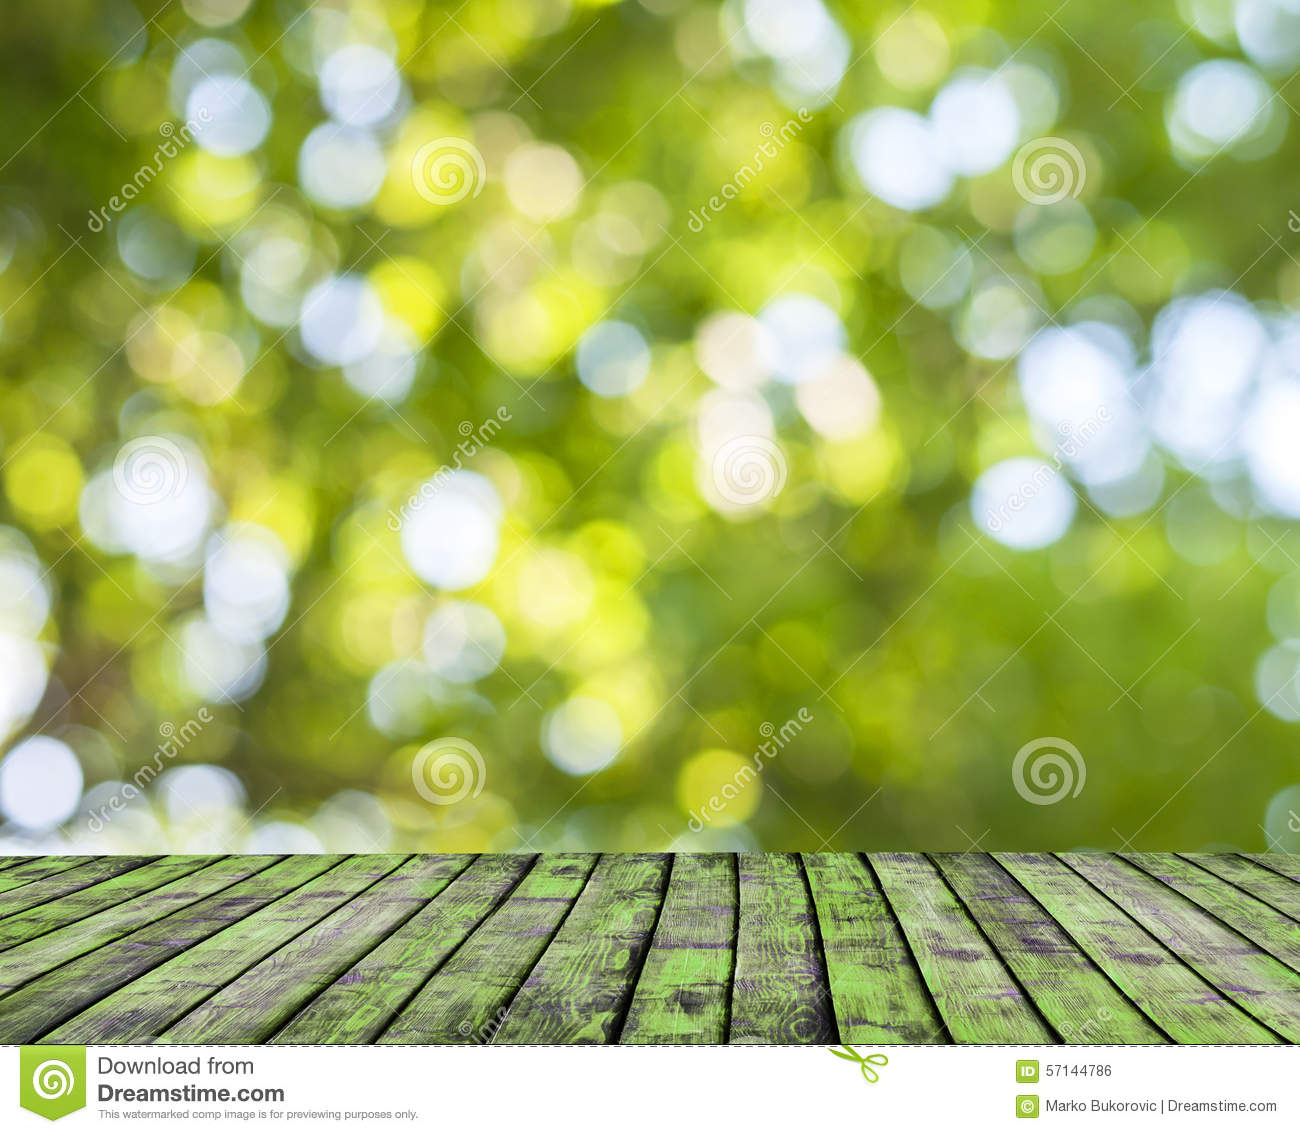 Blurred House wooden floor and bokeh blur royalty free stock photography cartoondealer com 64014209